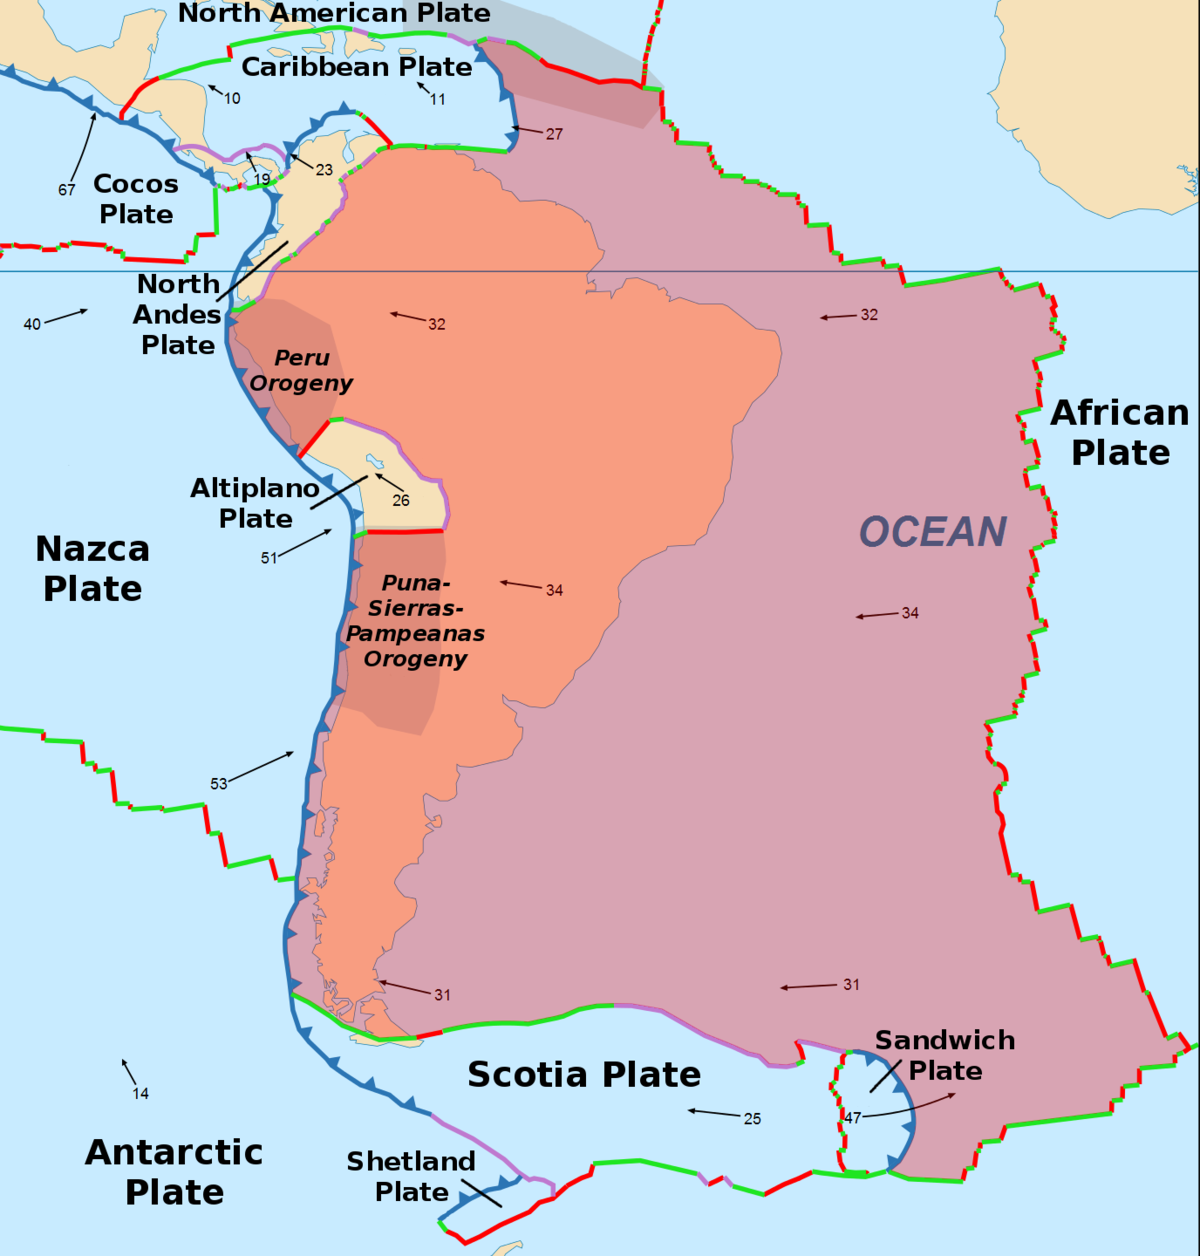 South American Plate Wikipedia - Pate boundaries off the coasts us map